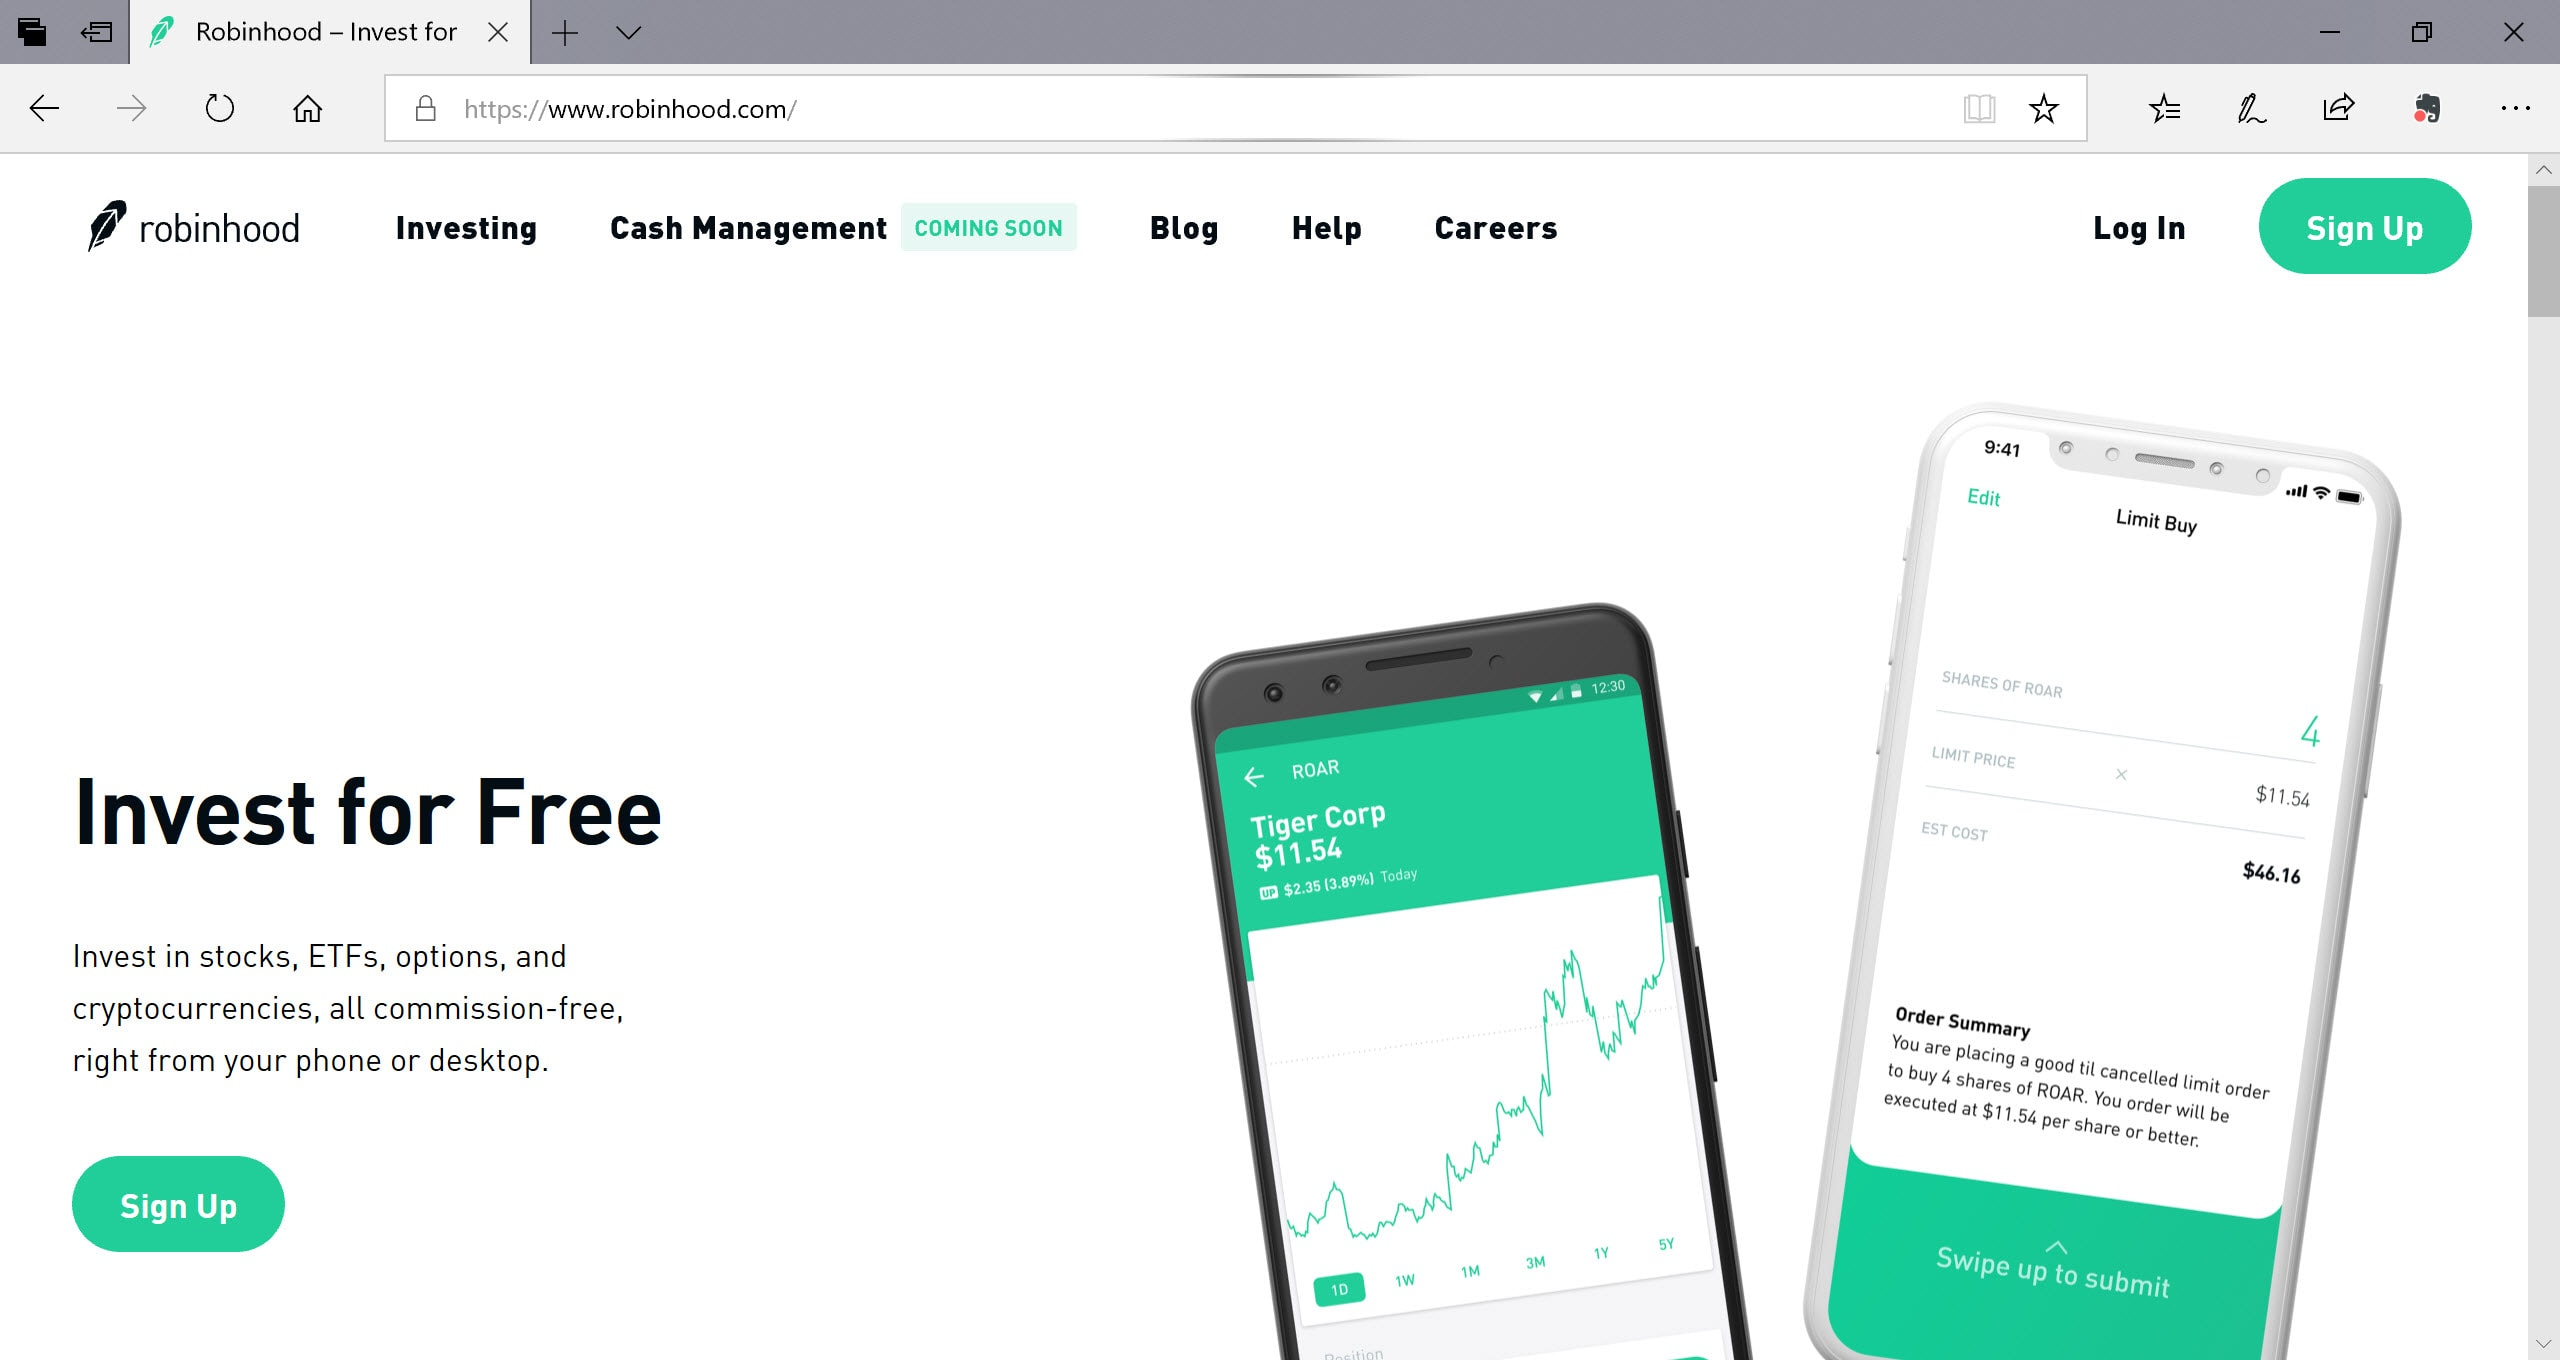 How To Increase The Instant Deposit In Robinhood App